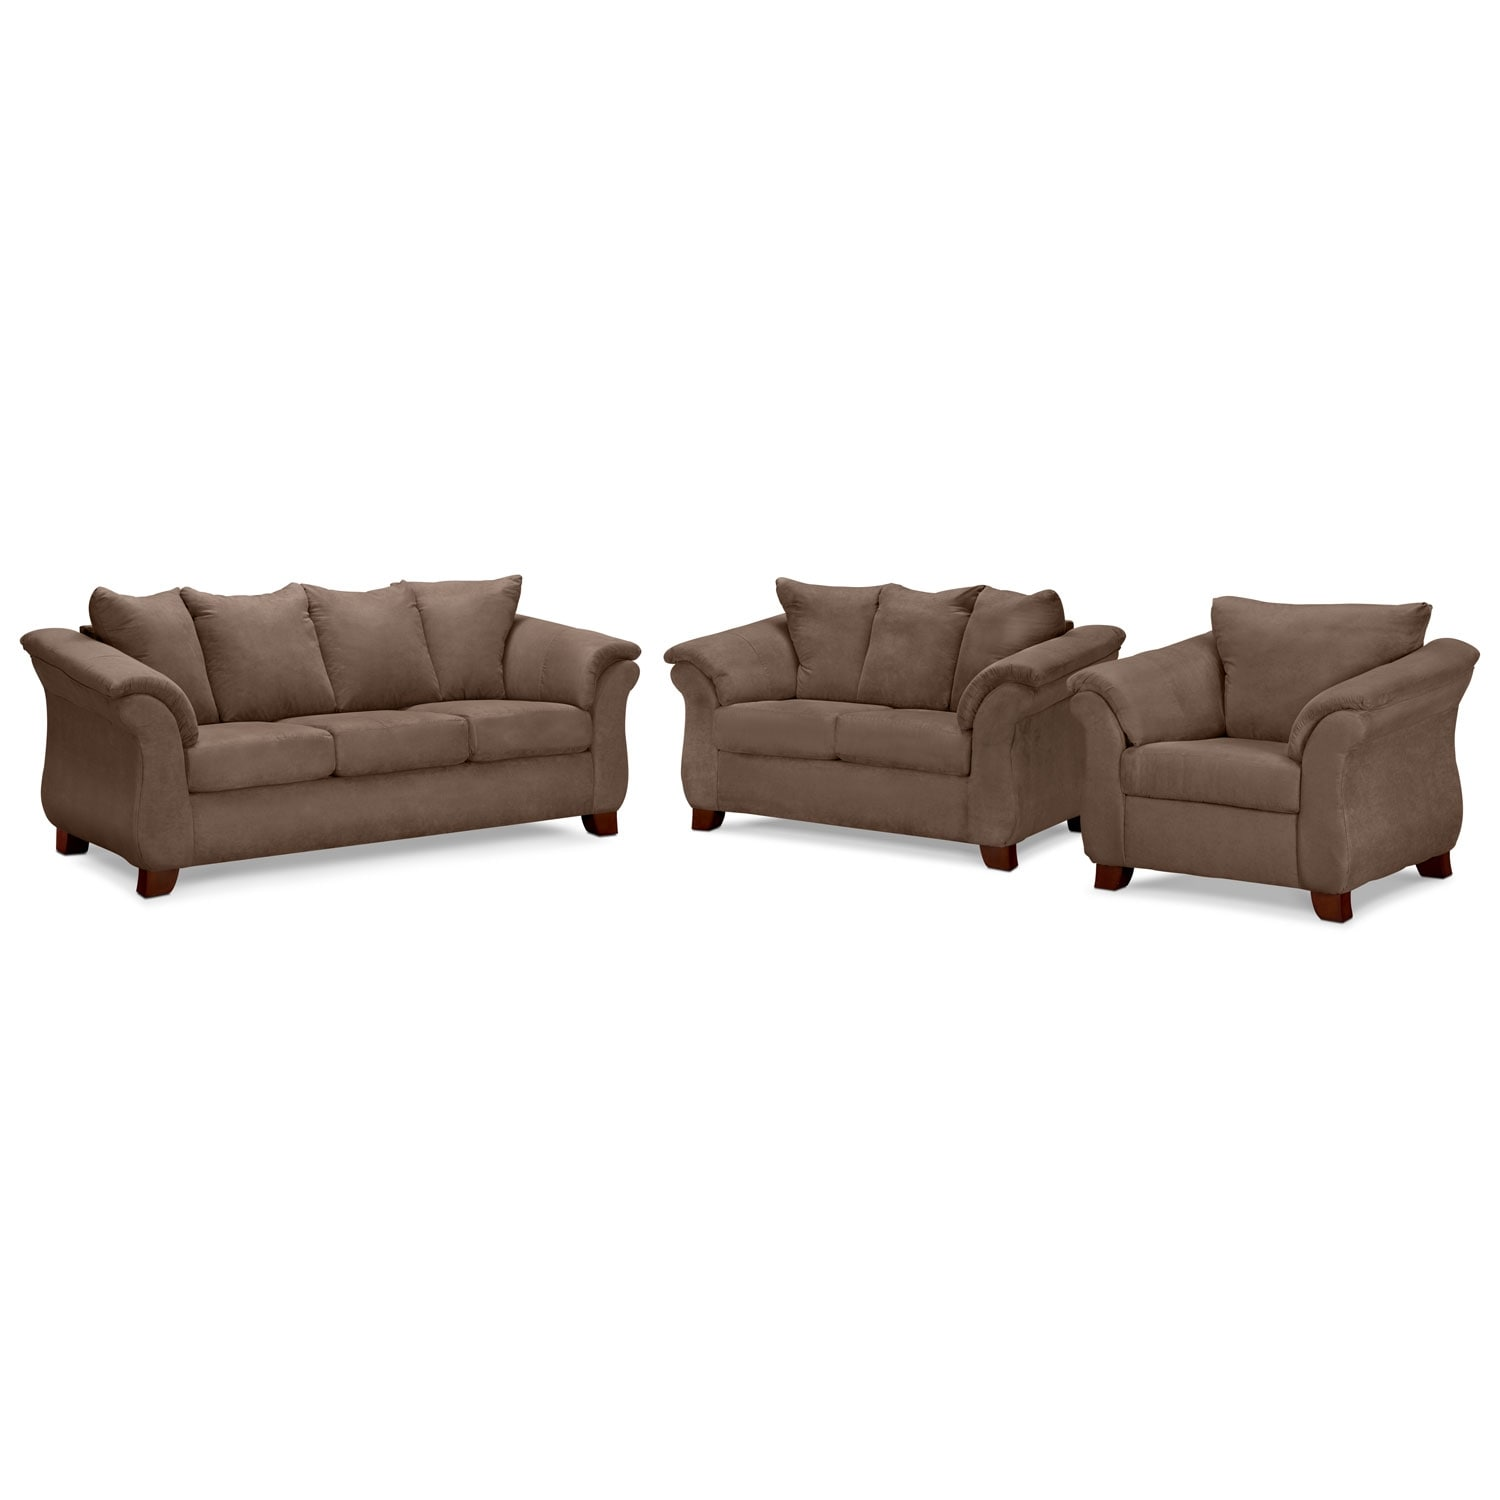 Adrian Sofa Loveseat And Chair Set American Signature Furniture